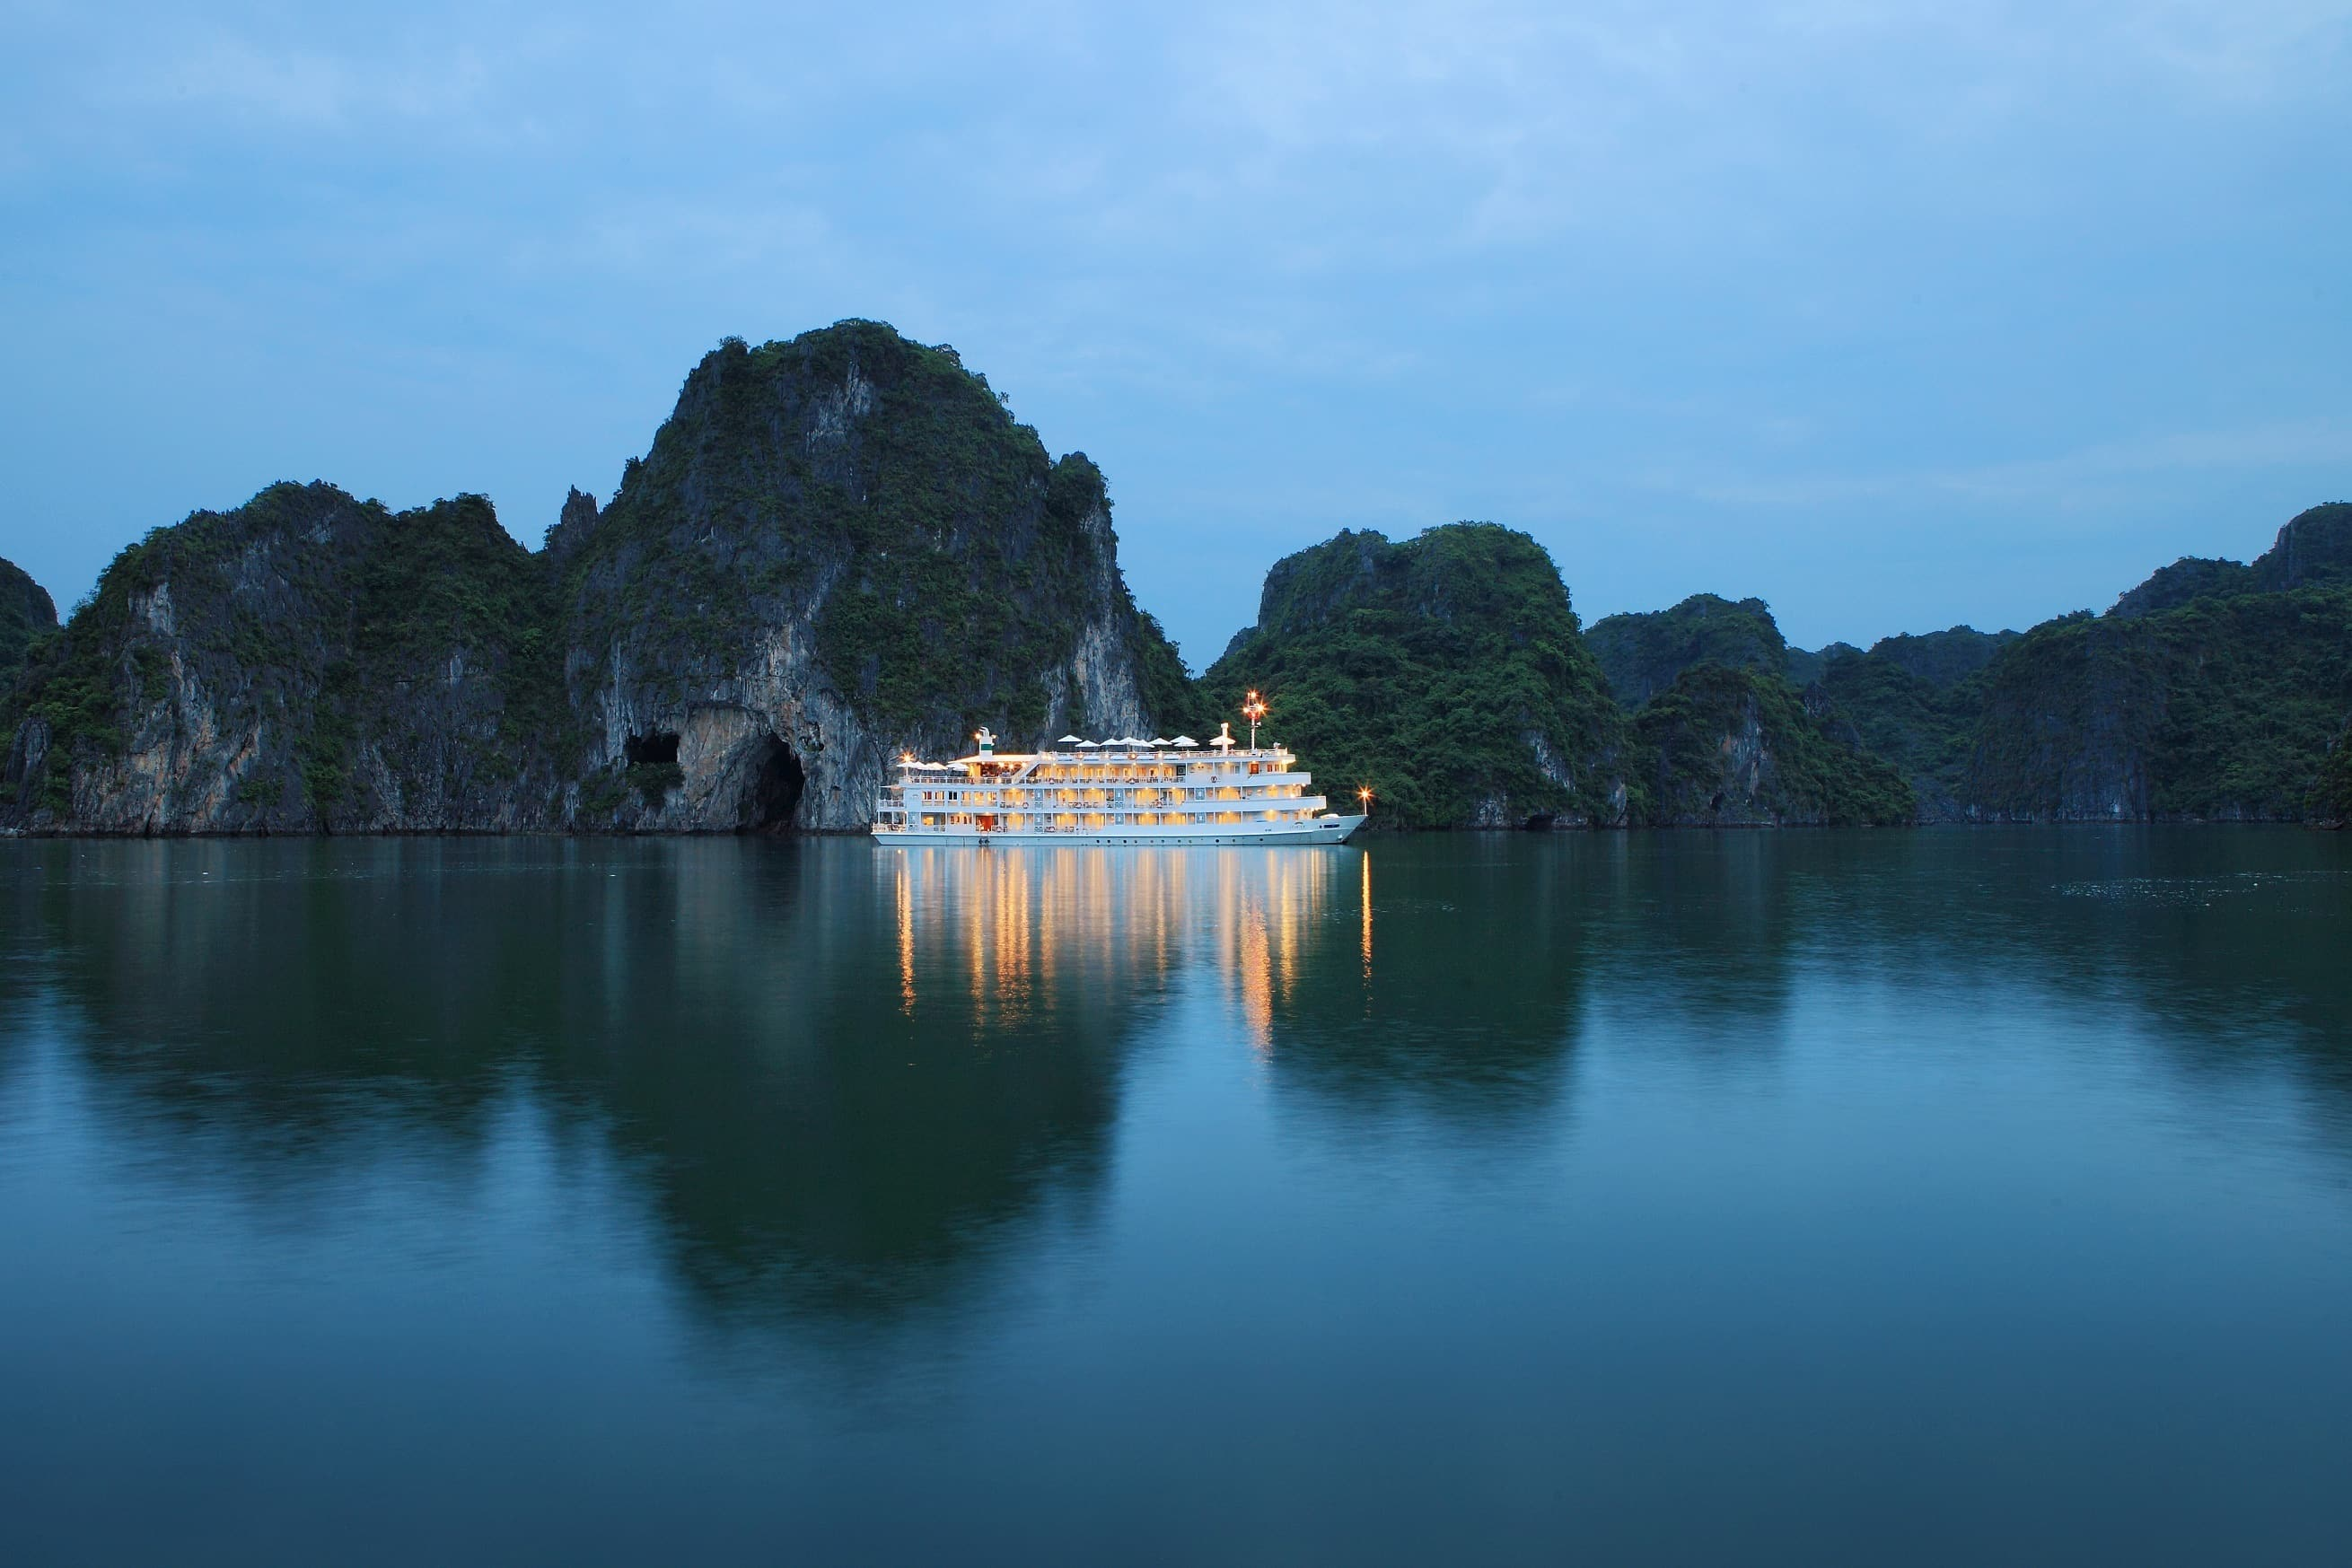 The Au Co Halong Bay Cruise in Vietnam